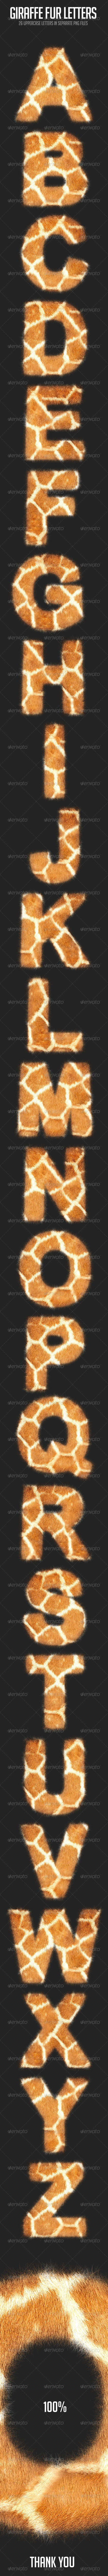 Giraffe Fur Letters - Text 3D Renders